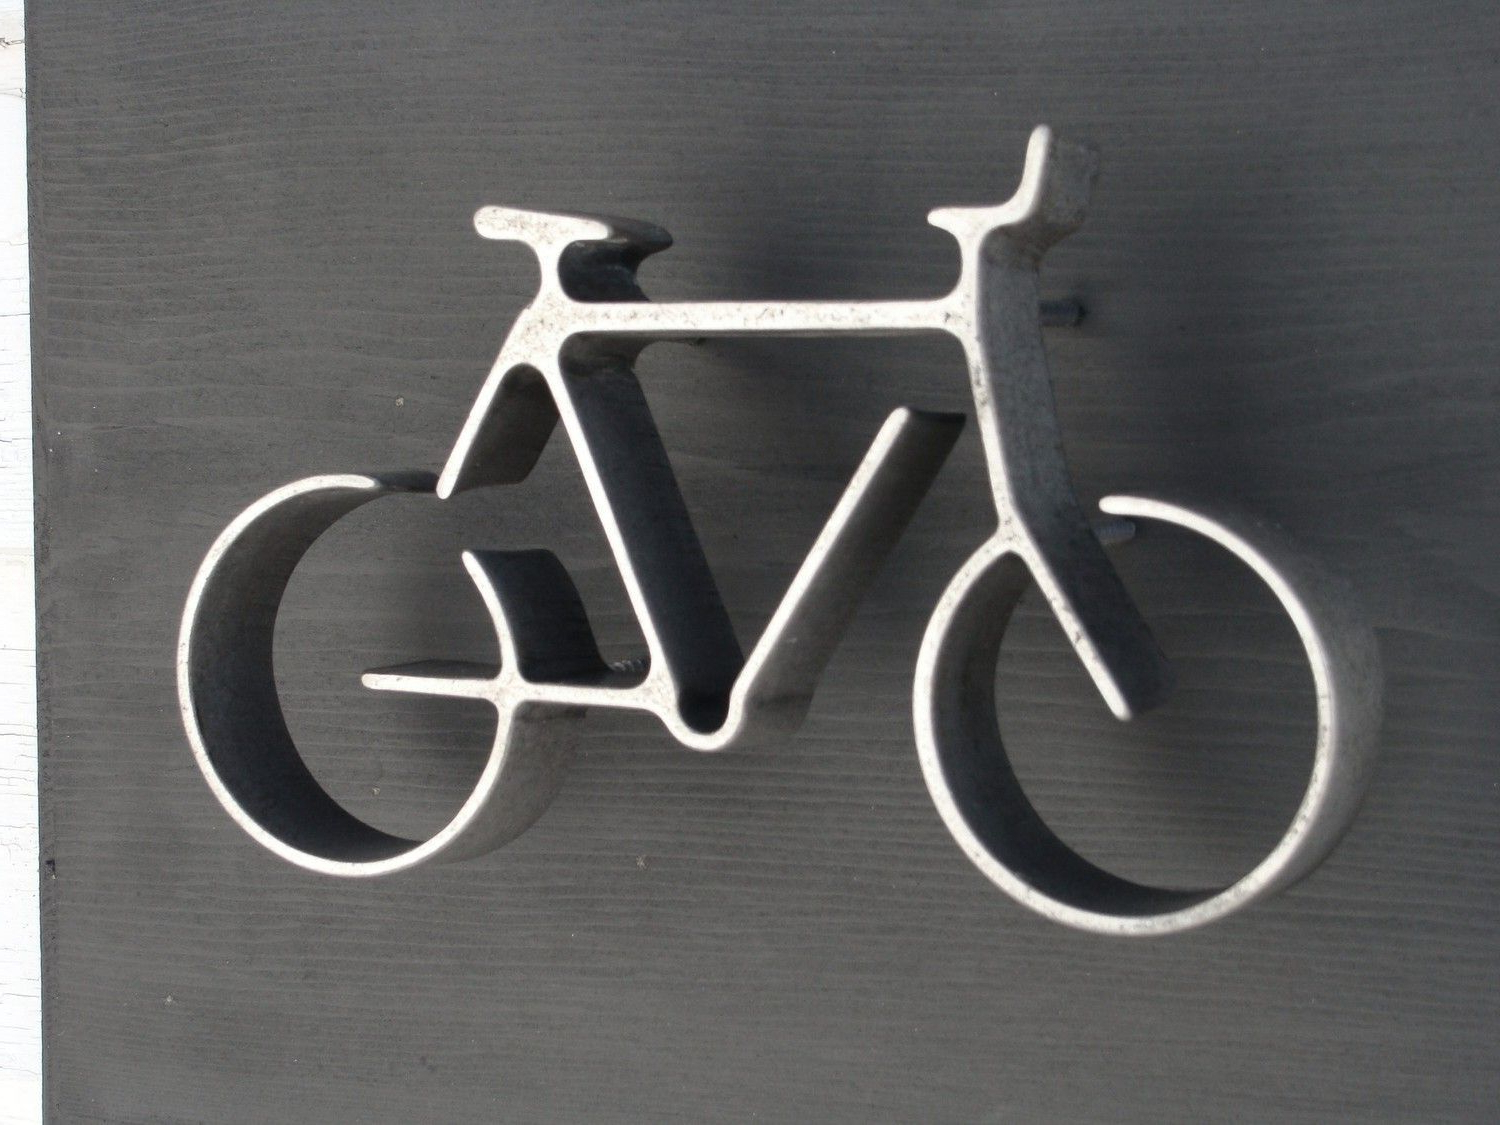 2020 Metal Bicycle Wall Decor With Metal Bicycle Wall Decor, Bike Wall Art, Home Decor Bicycle, Wall (View 2 of 20)